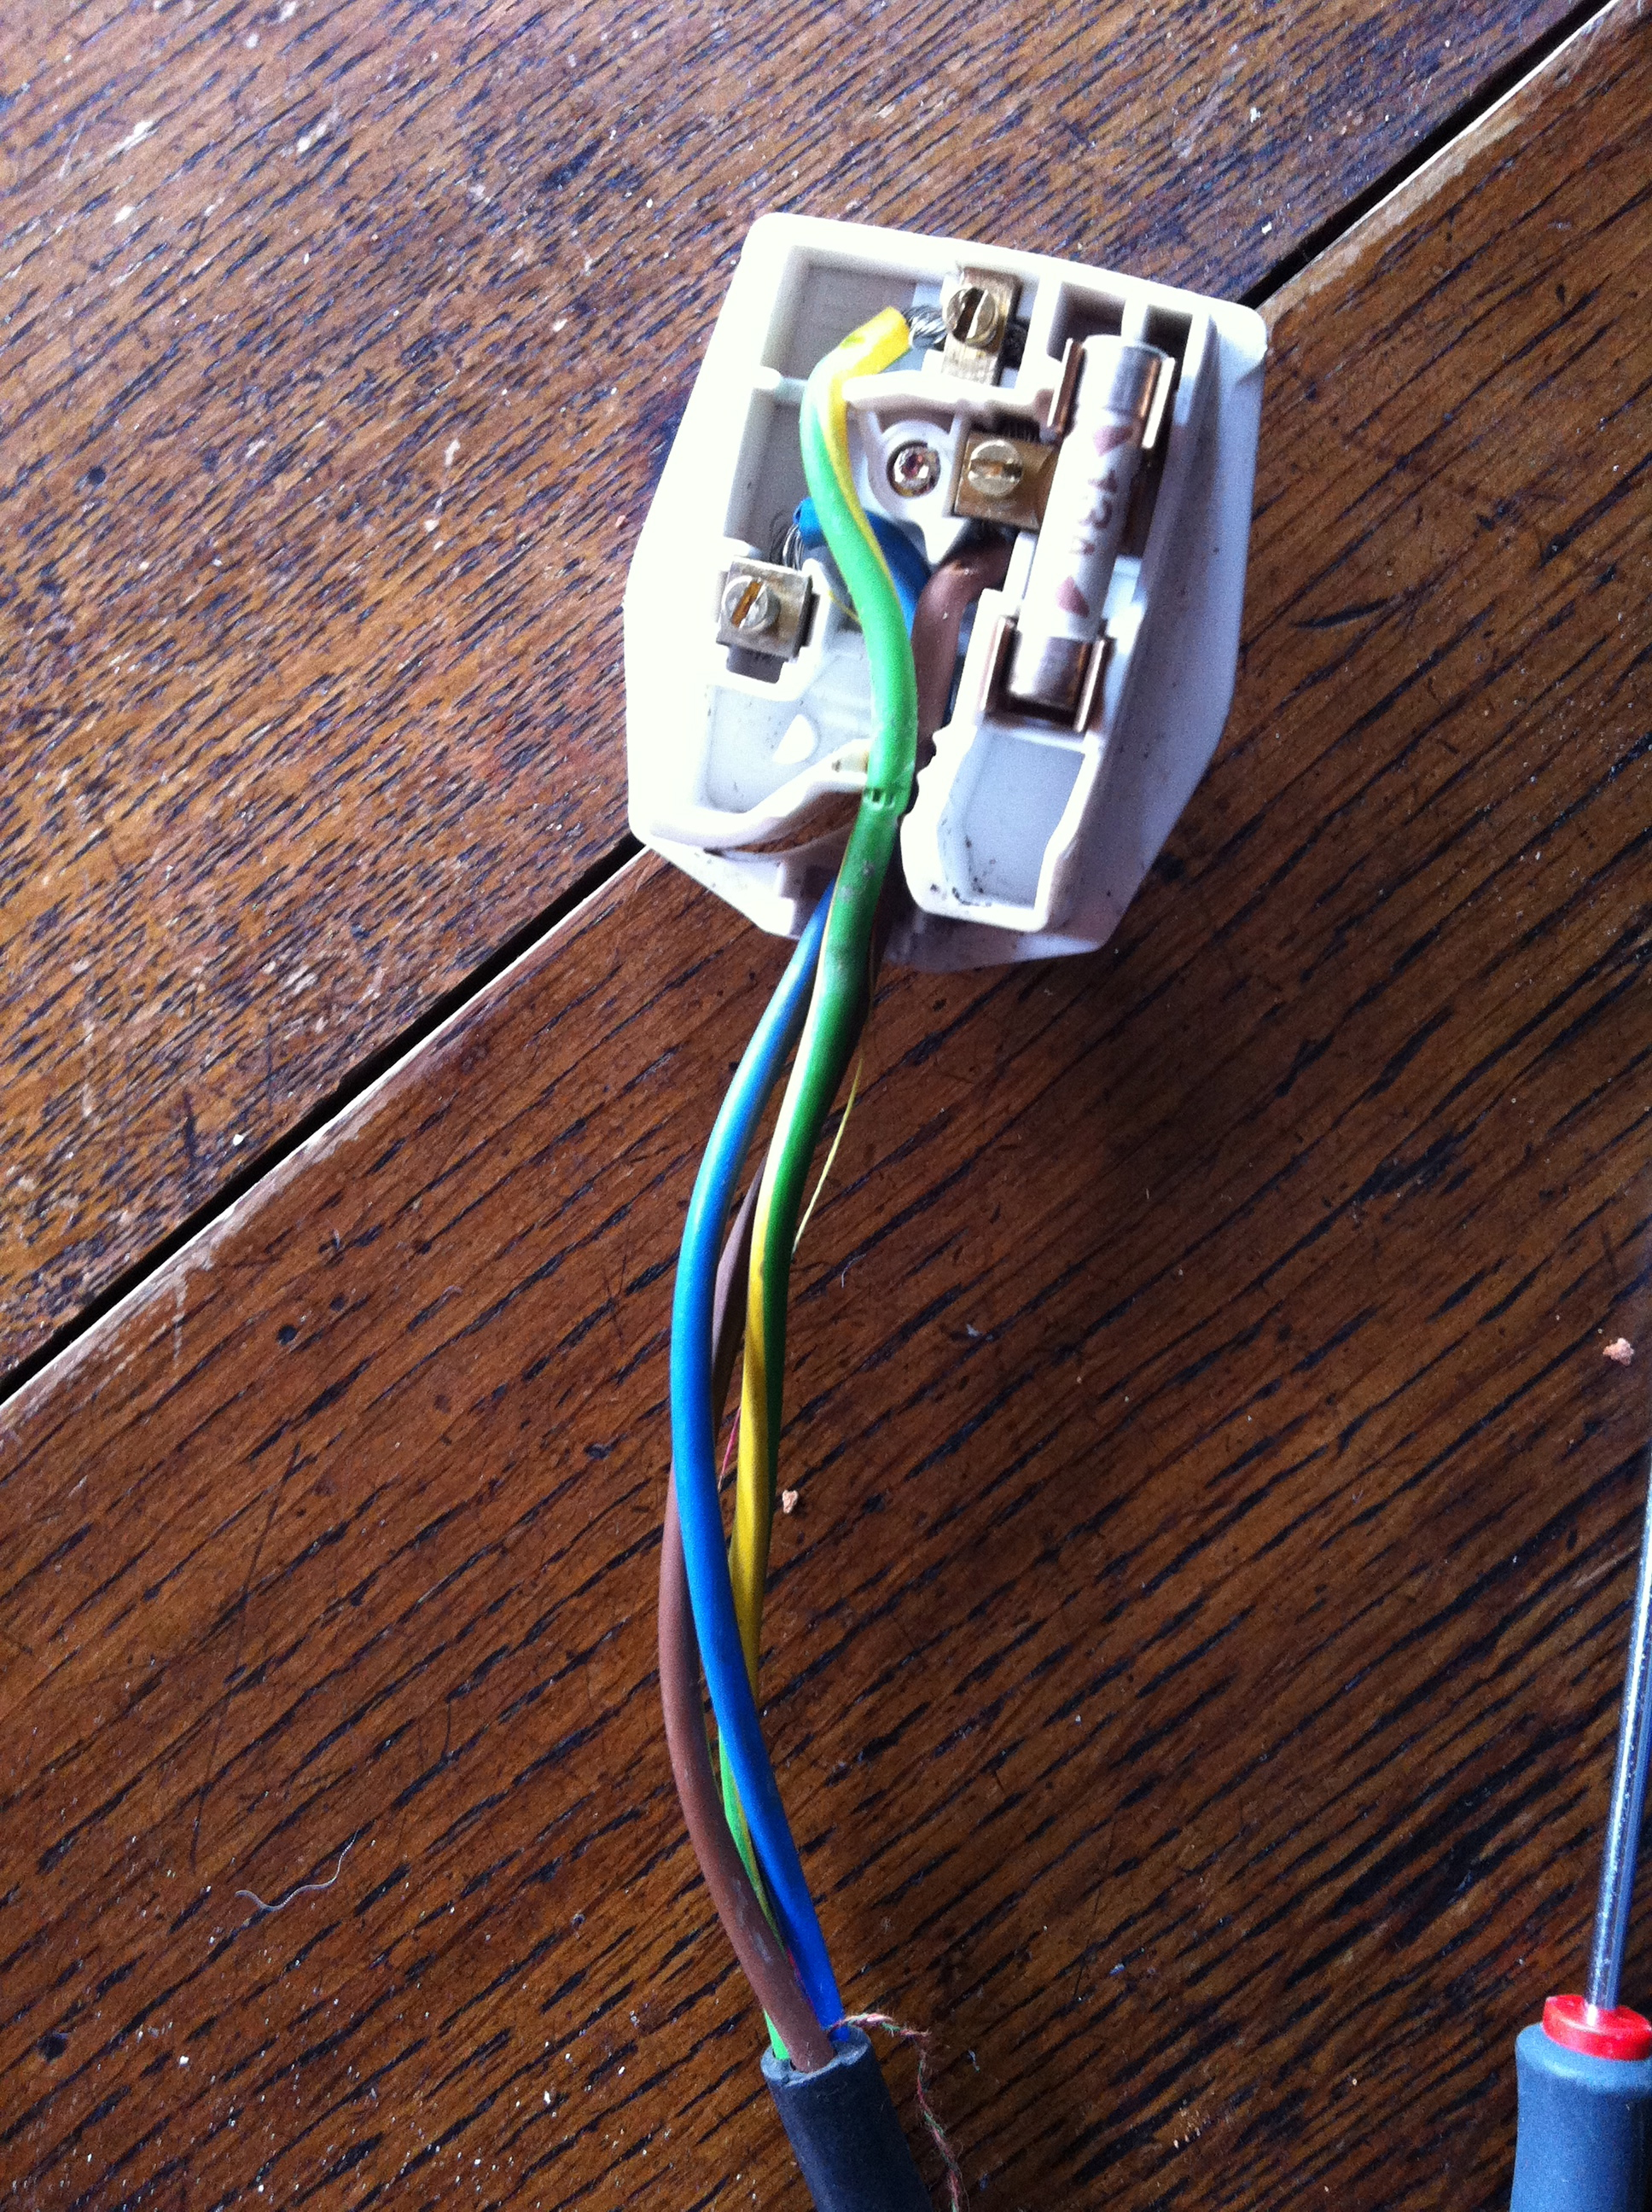 Pat Testing Failures Perspective Facilities Services